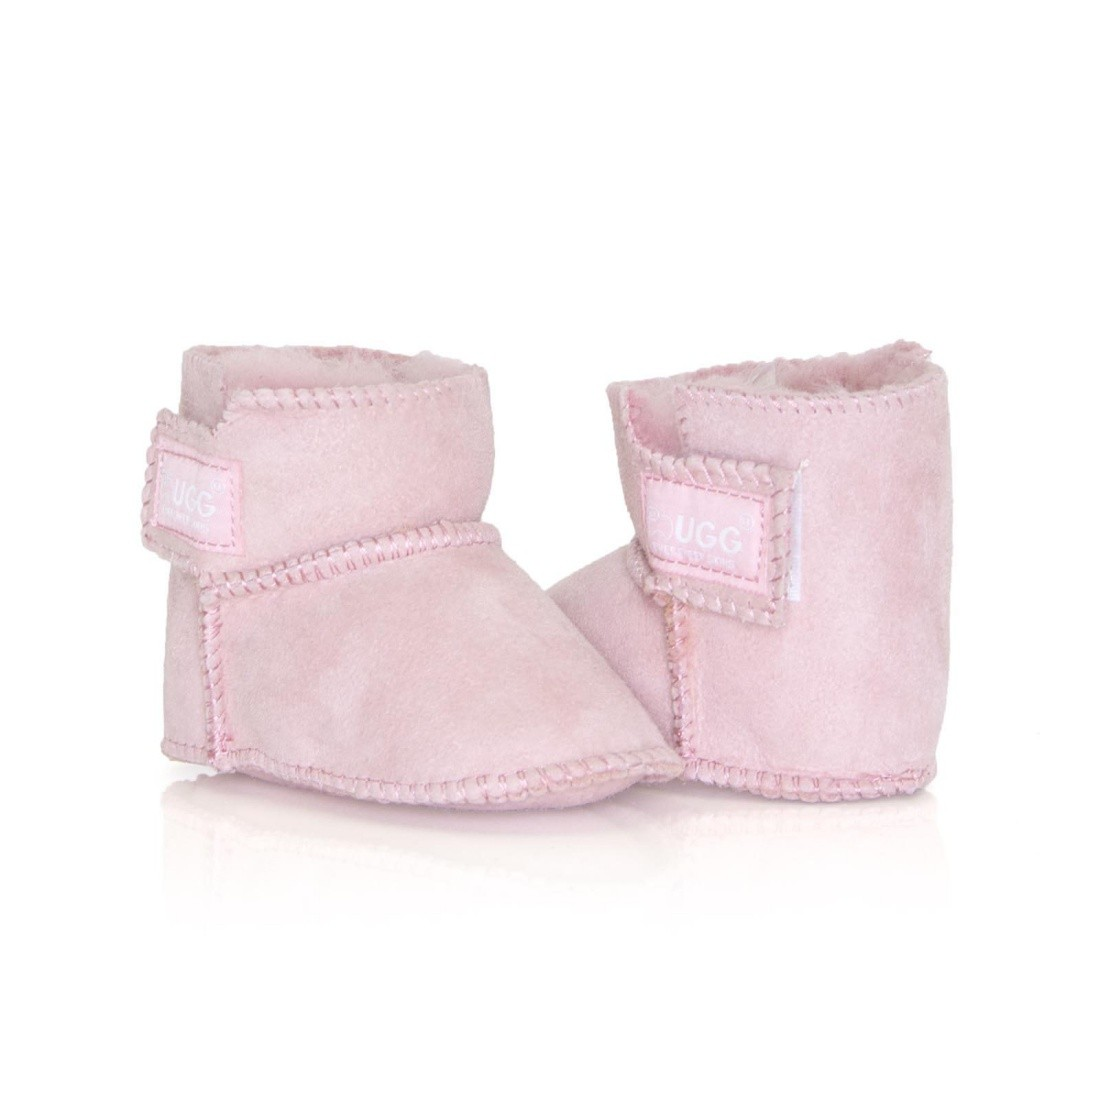 UGG Baby Erin Bootie Infant Boots - Pink - XL